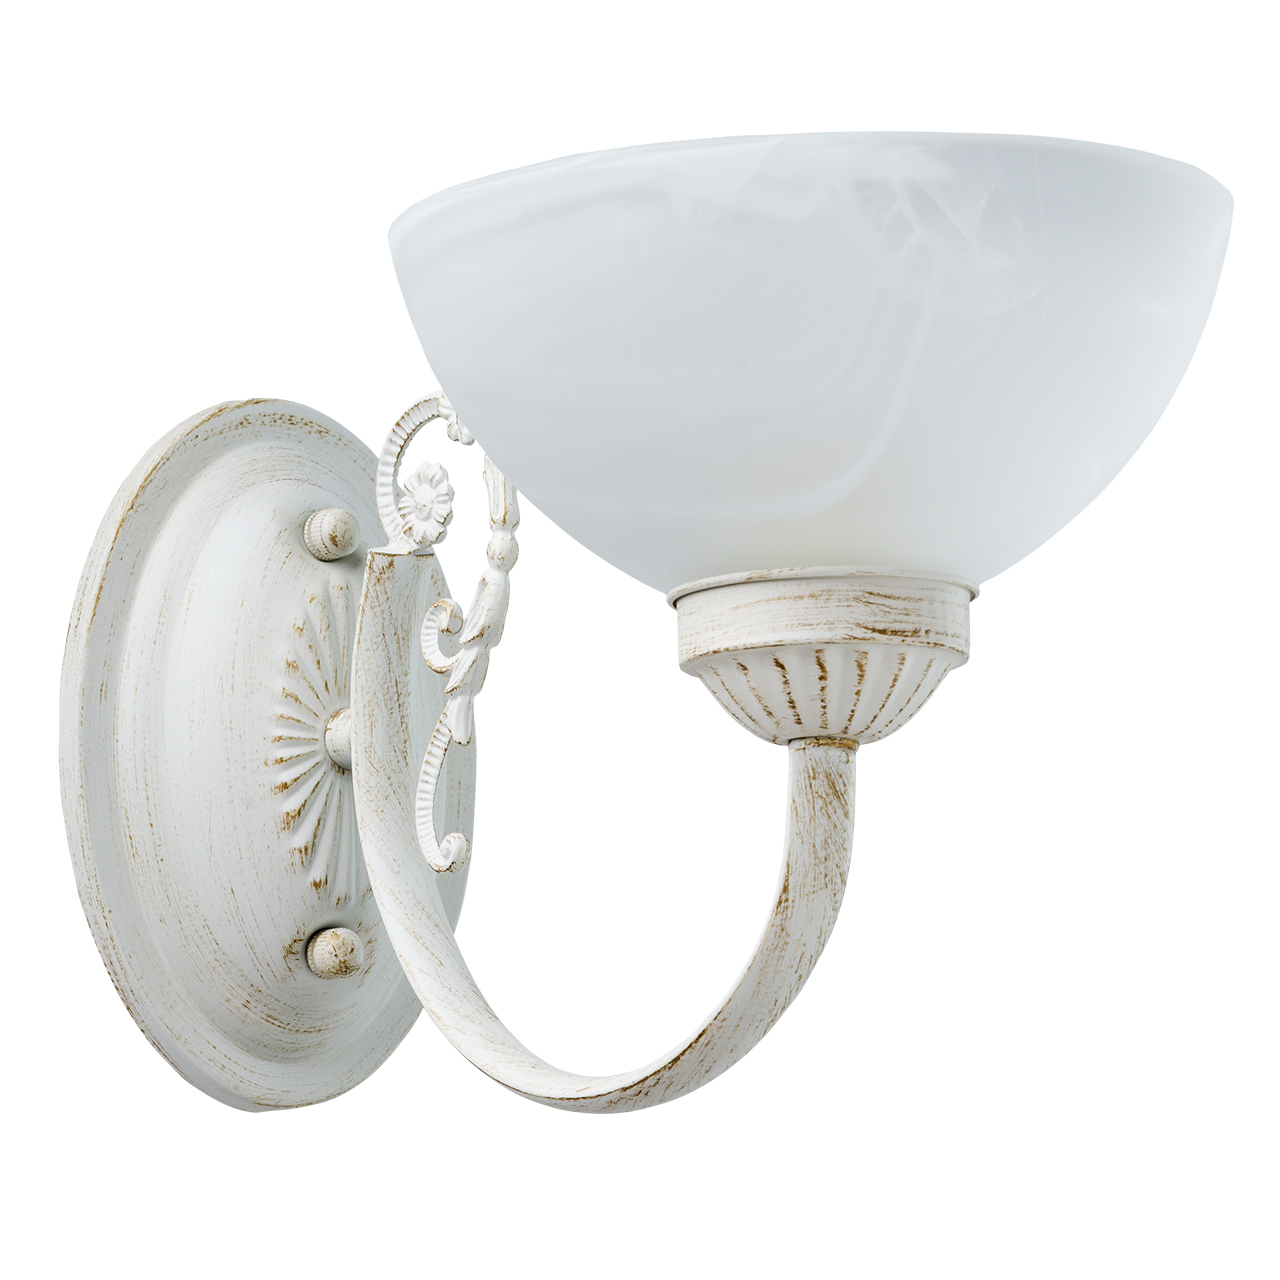 Настенное бра MW Light Олимп 318024301 бра mw light олимп 318020801